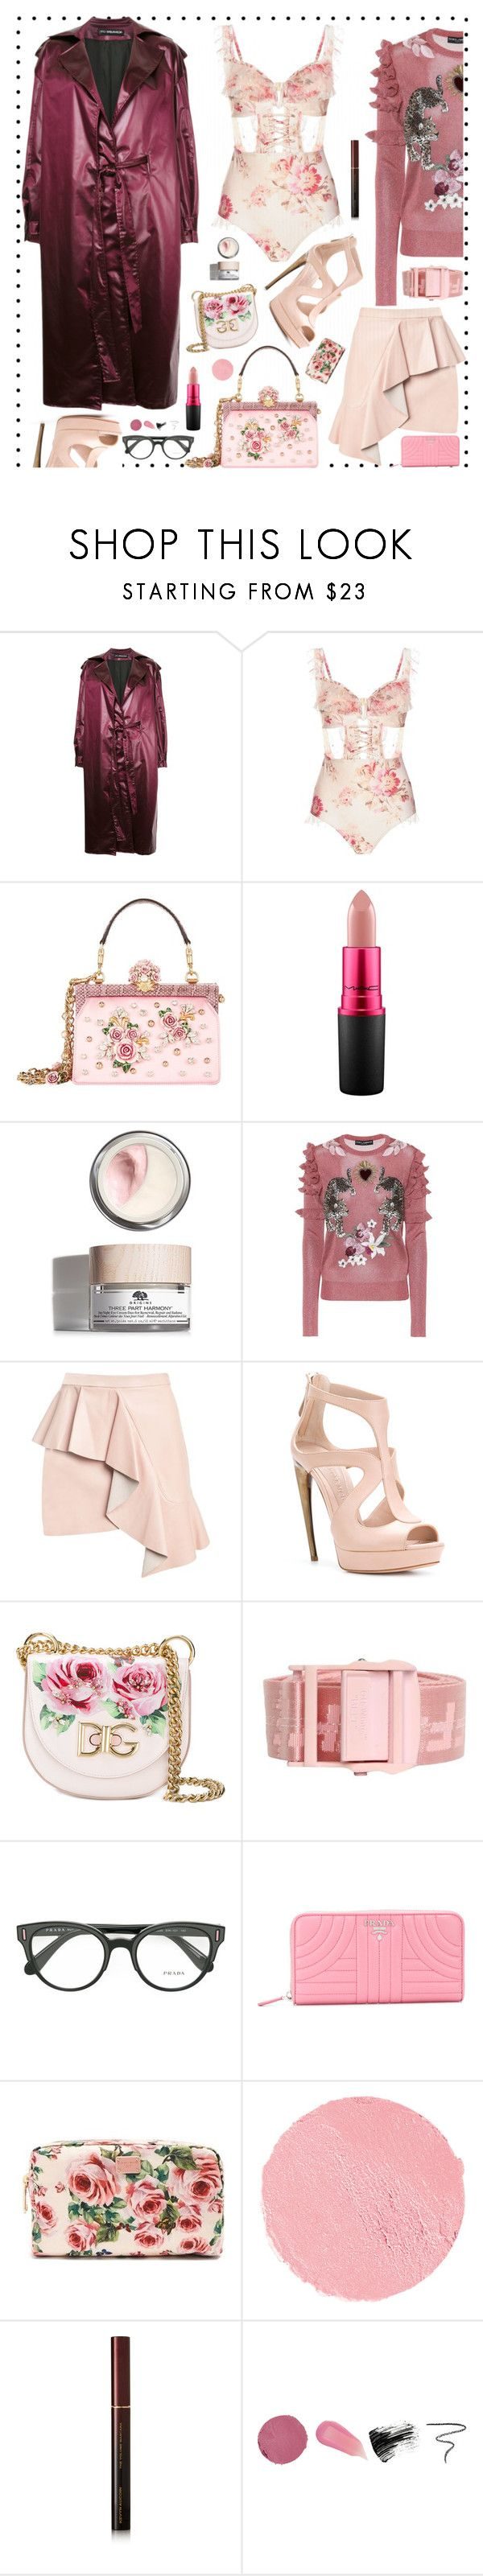 """""""Turn up the Volume..."""" by sue-mes on Polyvore featuring Nino Babukhadia, Zimmermann, Dolce&Gabbana, MAC Cosmetics, Origins, Alexander McQueen, Off-White, Prada, Marc Jacobs and Kevyn Aucoin"""